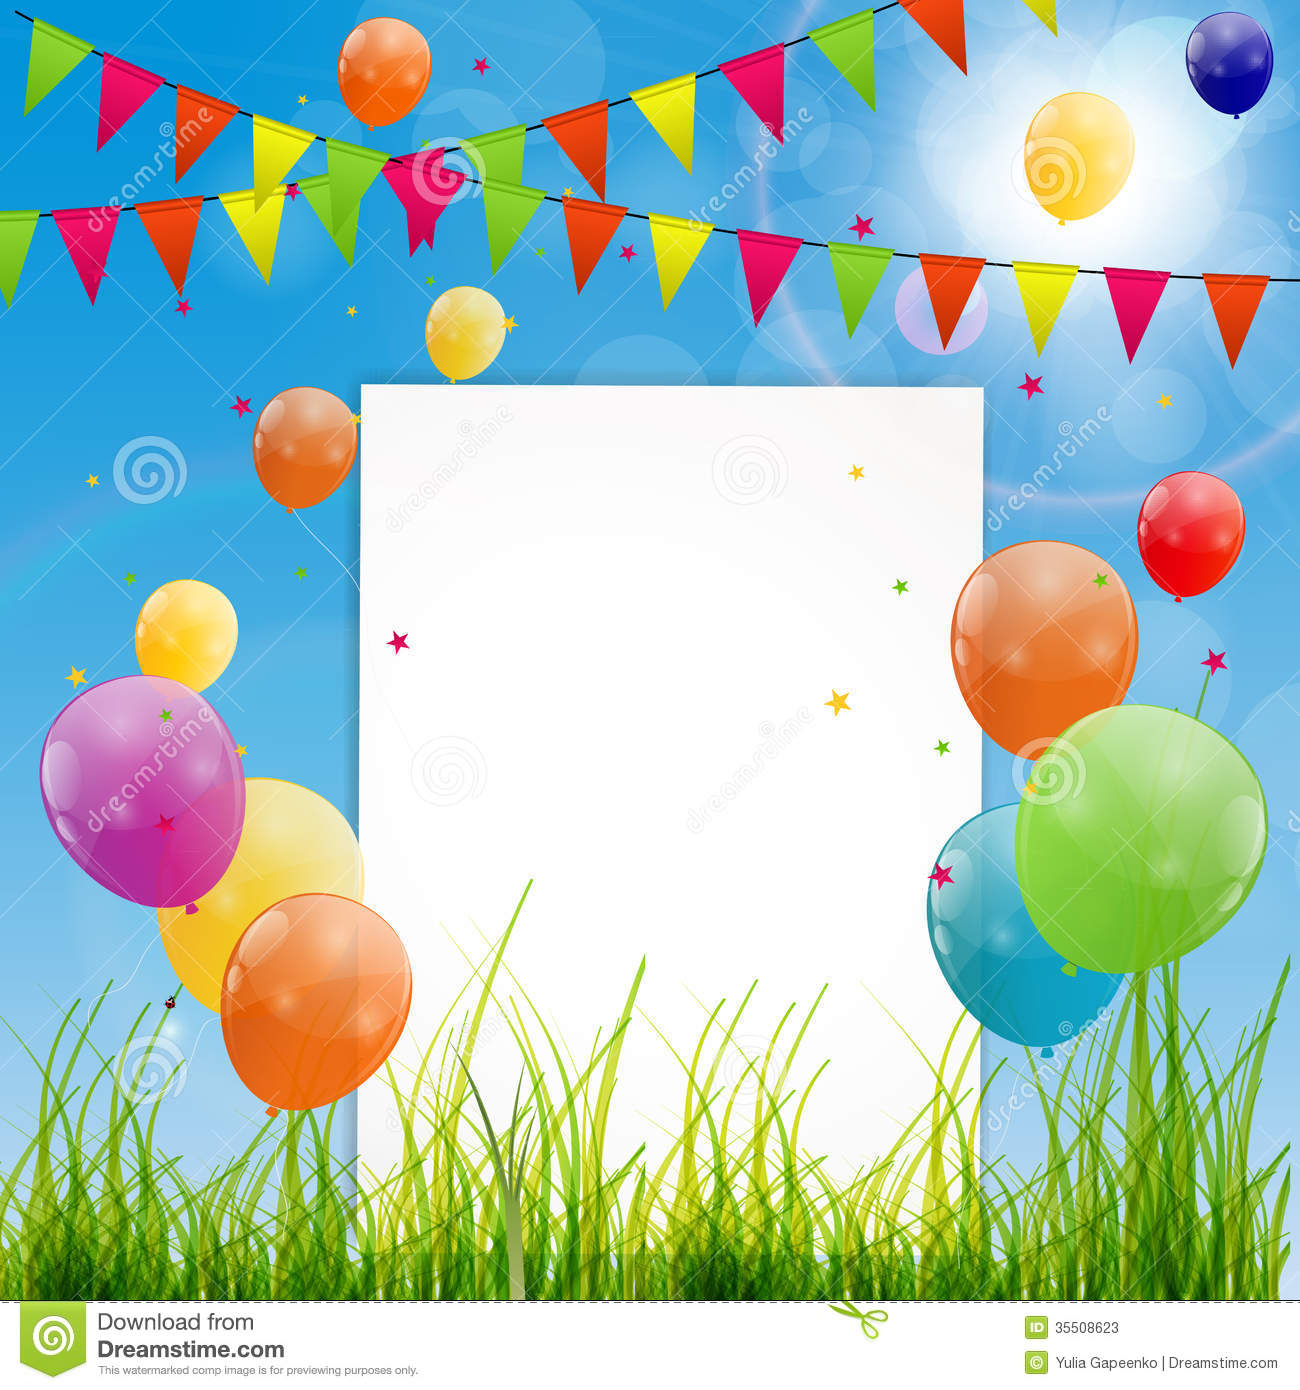 background images for birthday greetings ; color-glossy-balloons-birthday-card-background-vector-illustration-35508623